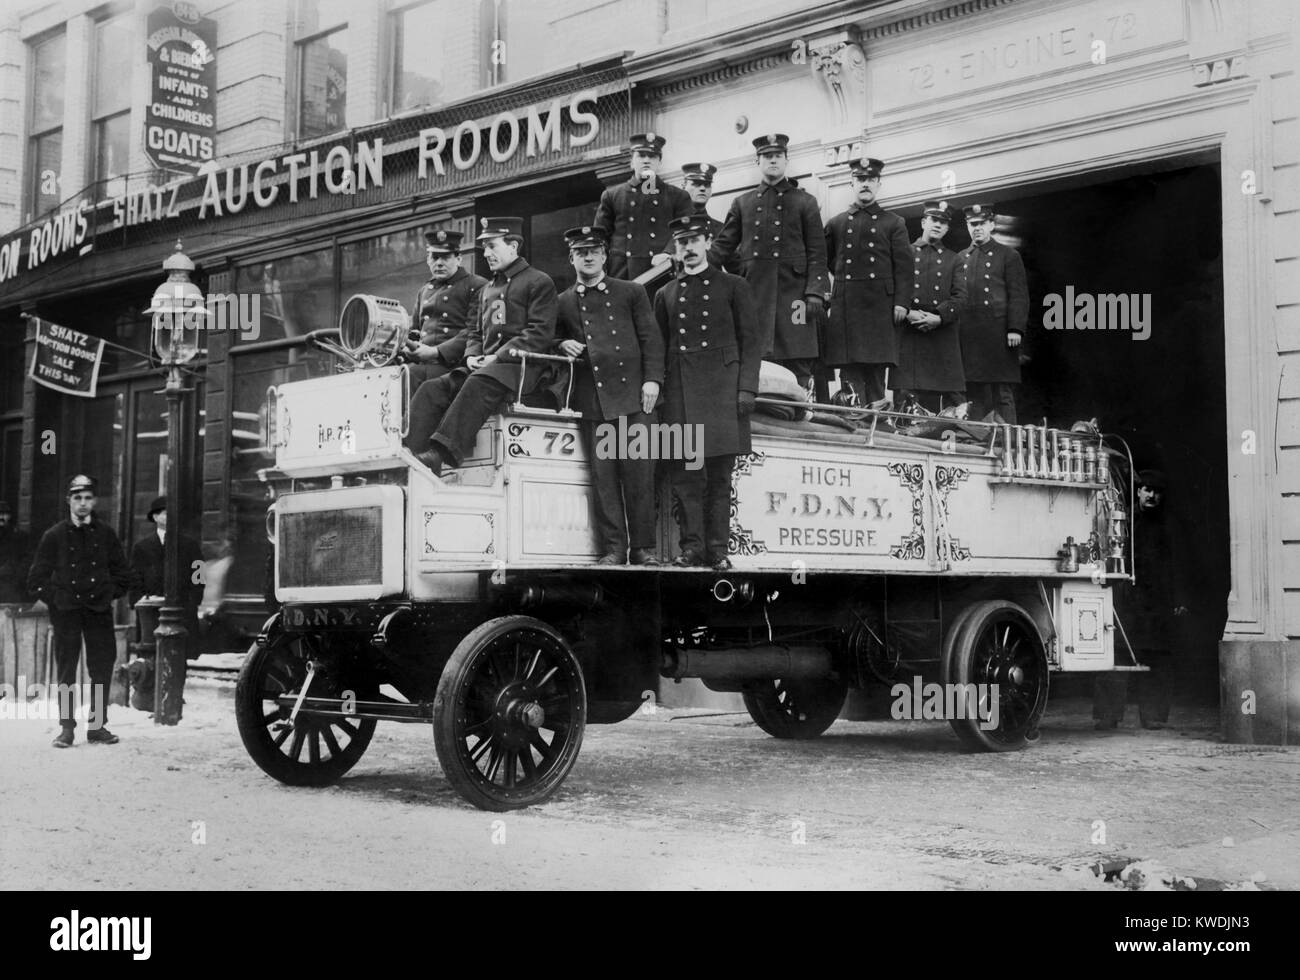 New York City Firemen on their high pressure motorized fire engine, c. 1908-16 (BSLOC_2017_17_100) - Stock Image